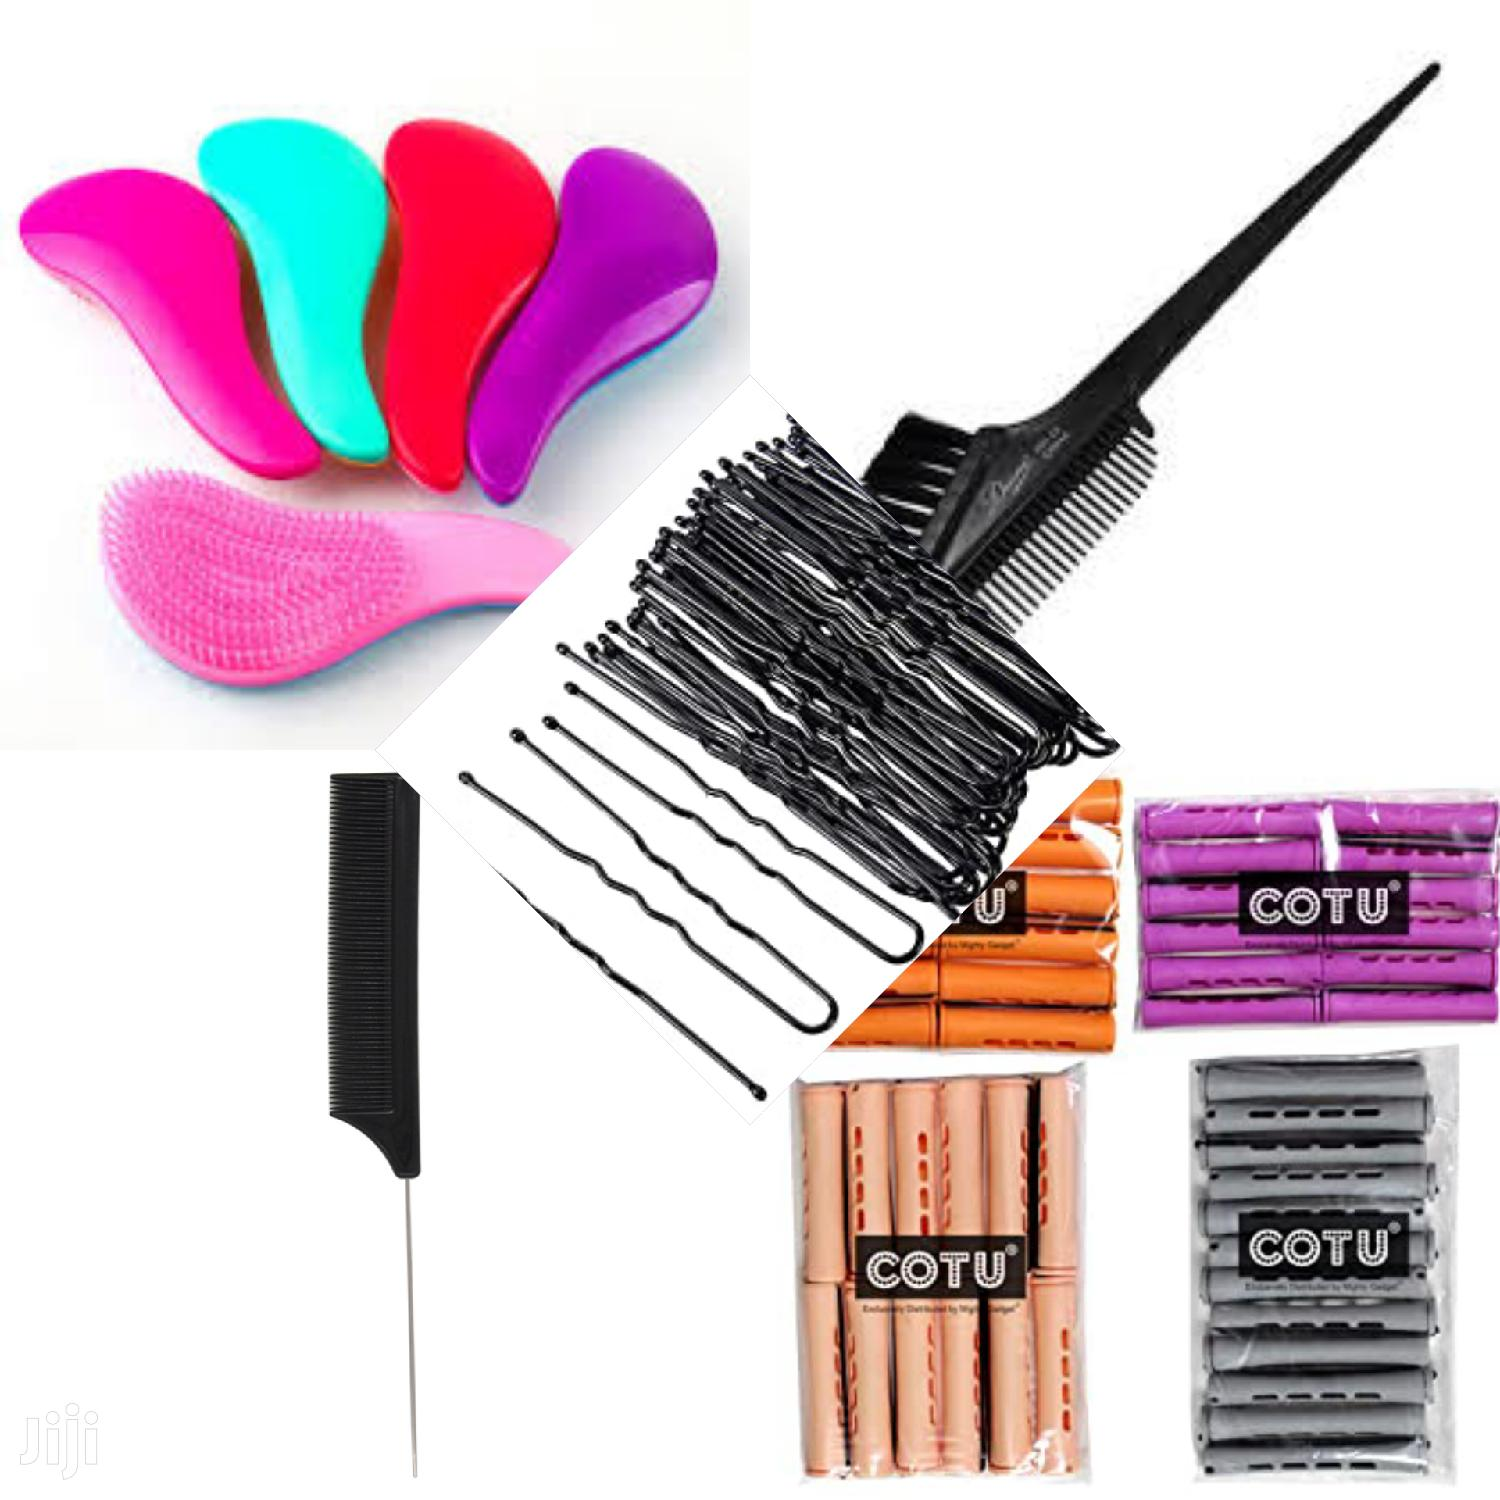 Detangling Brush,Perm Rod, Styling Comb And More